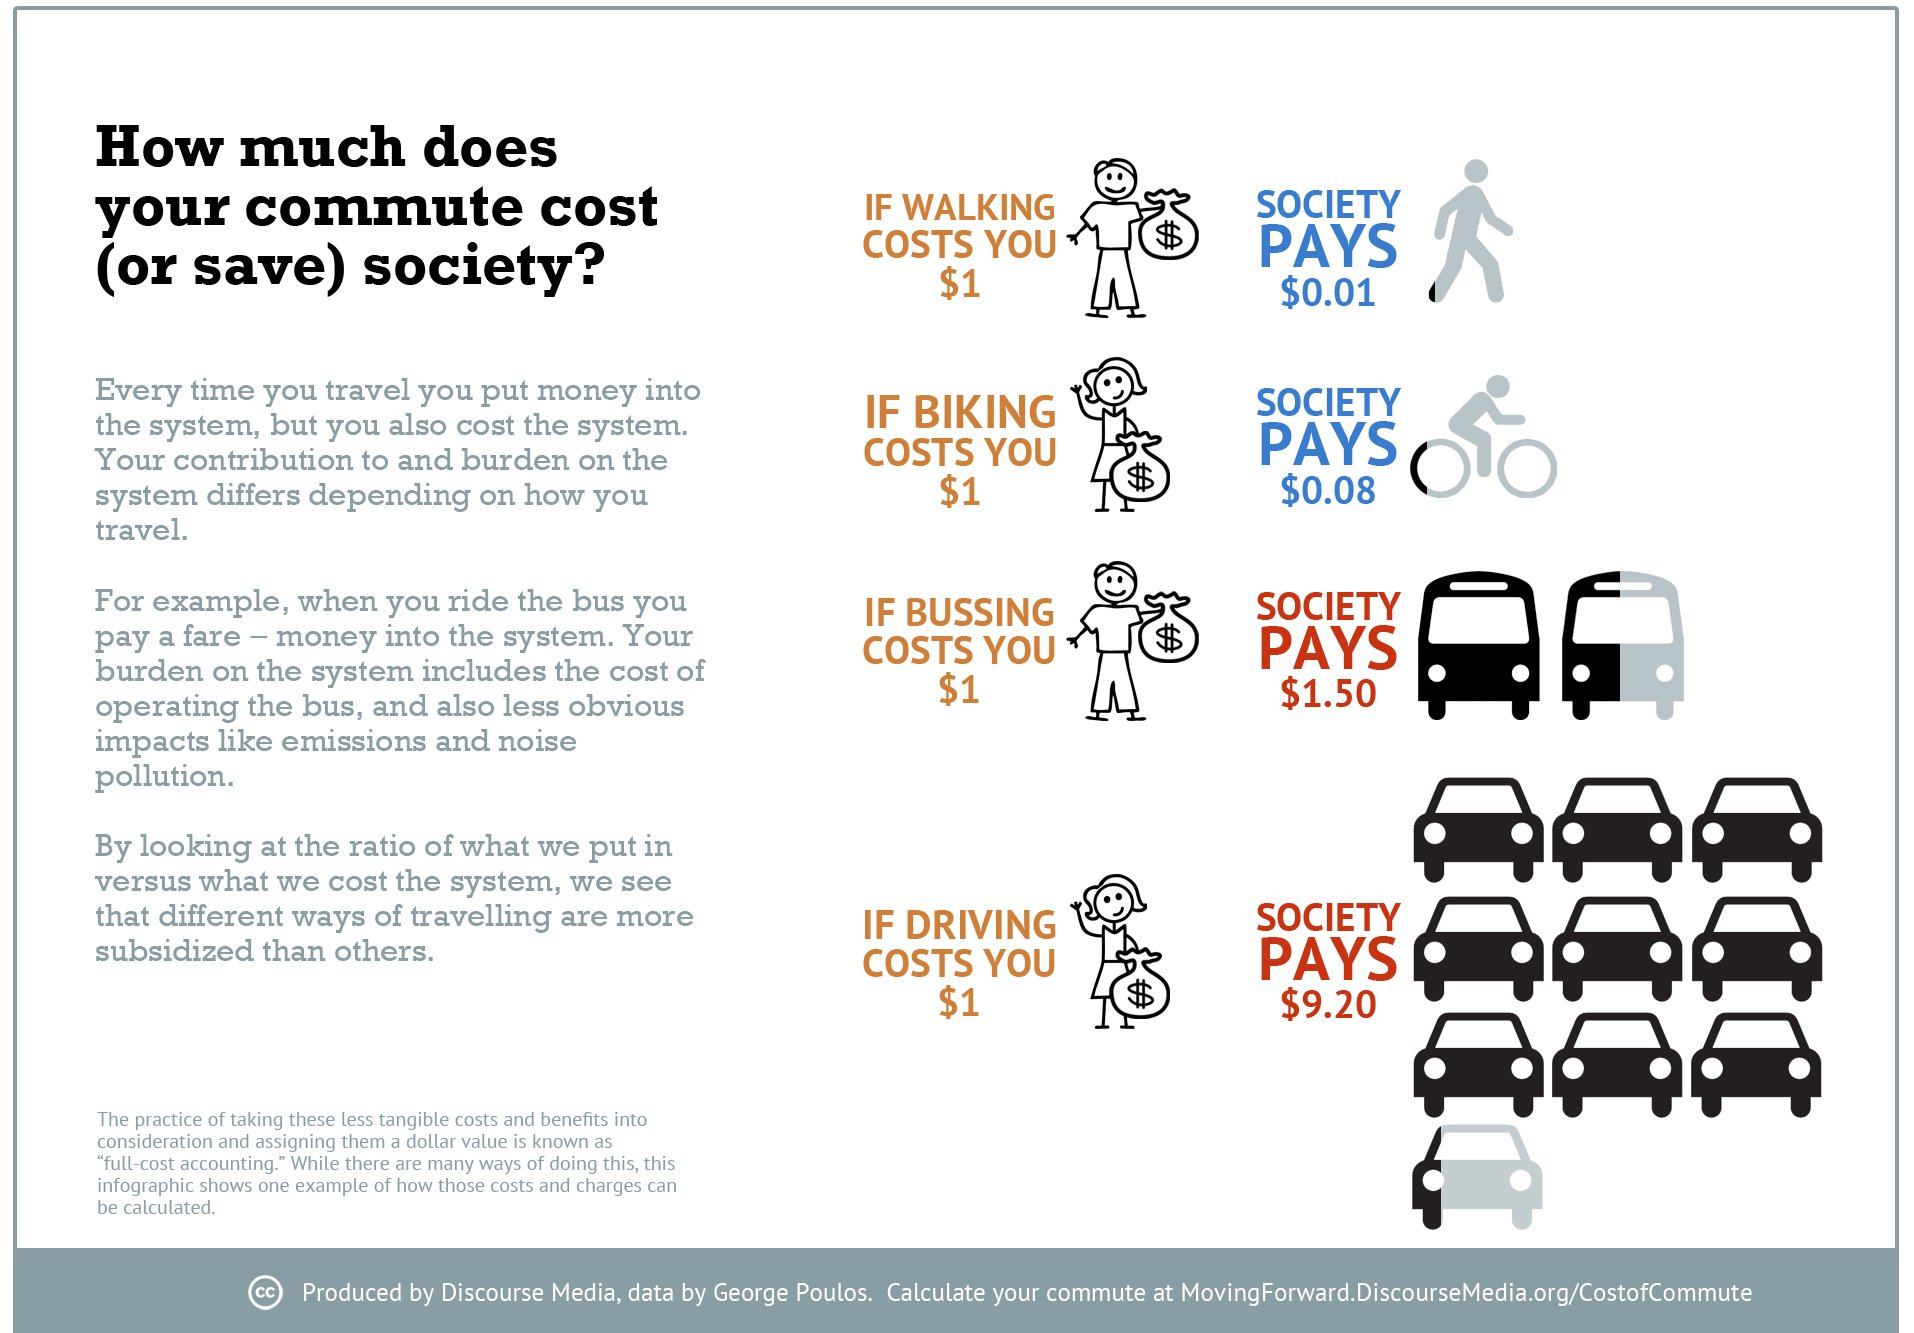 How much does your commute cost - or save - society? How Much Does YOUR Commute Cost Society?